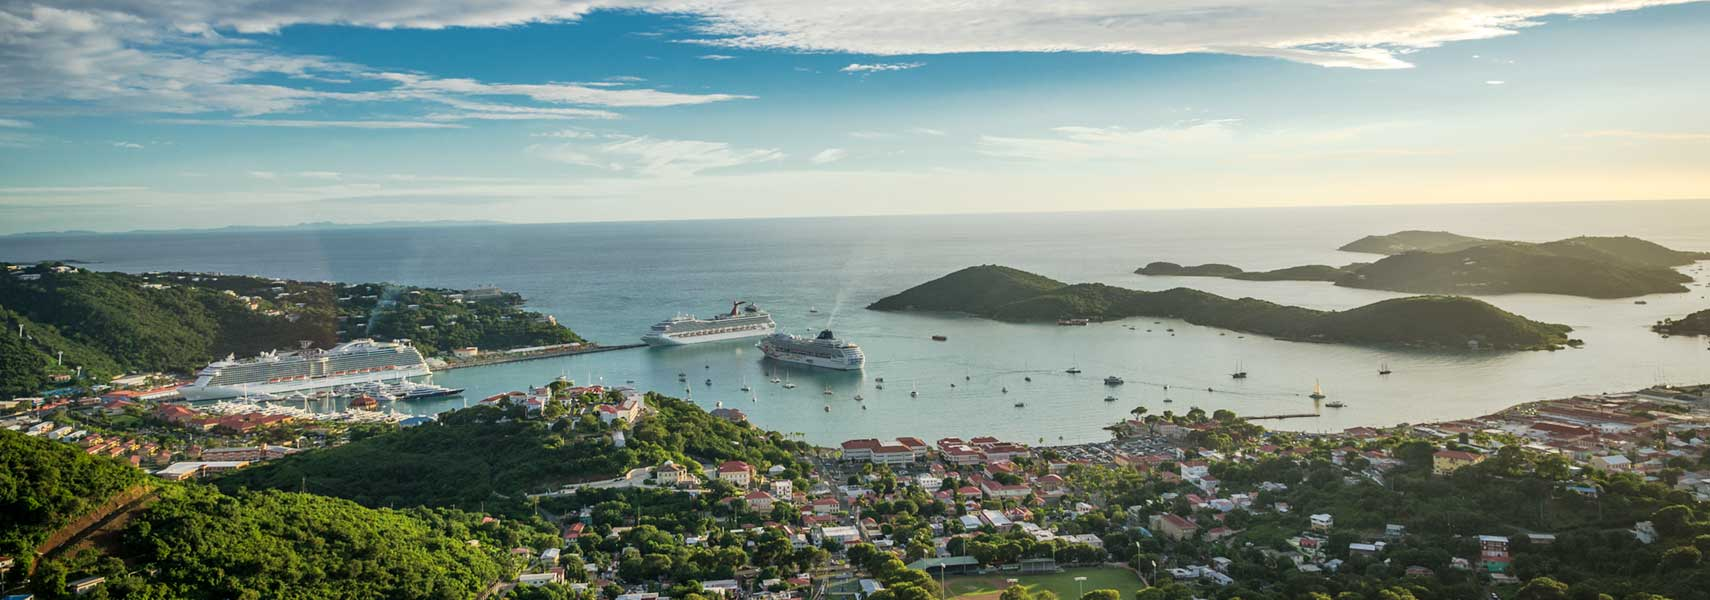 Us virgin islands st thomas st croix st john nations online view of the islands of st thomas us virgin islands sciox Choice Image